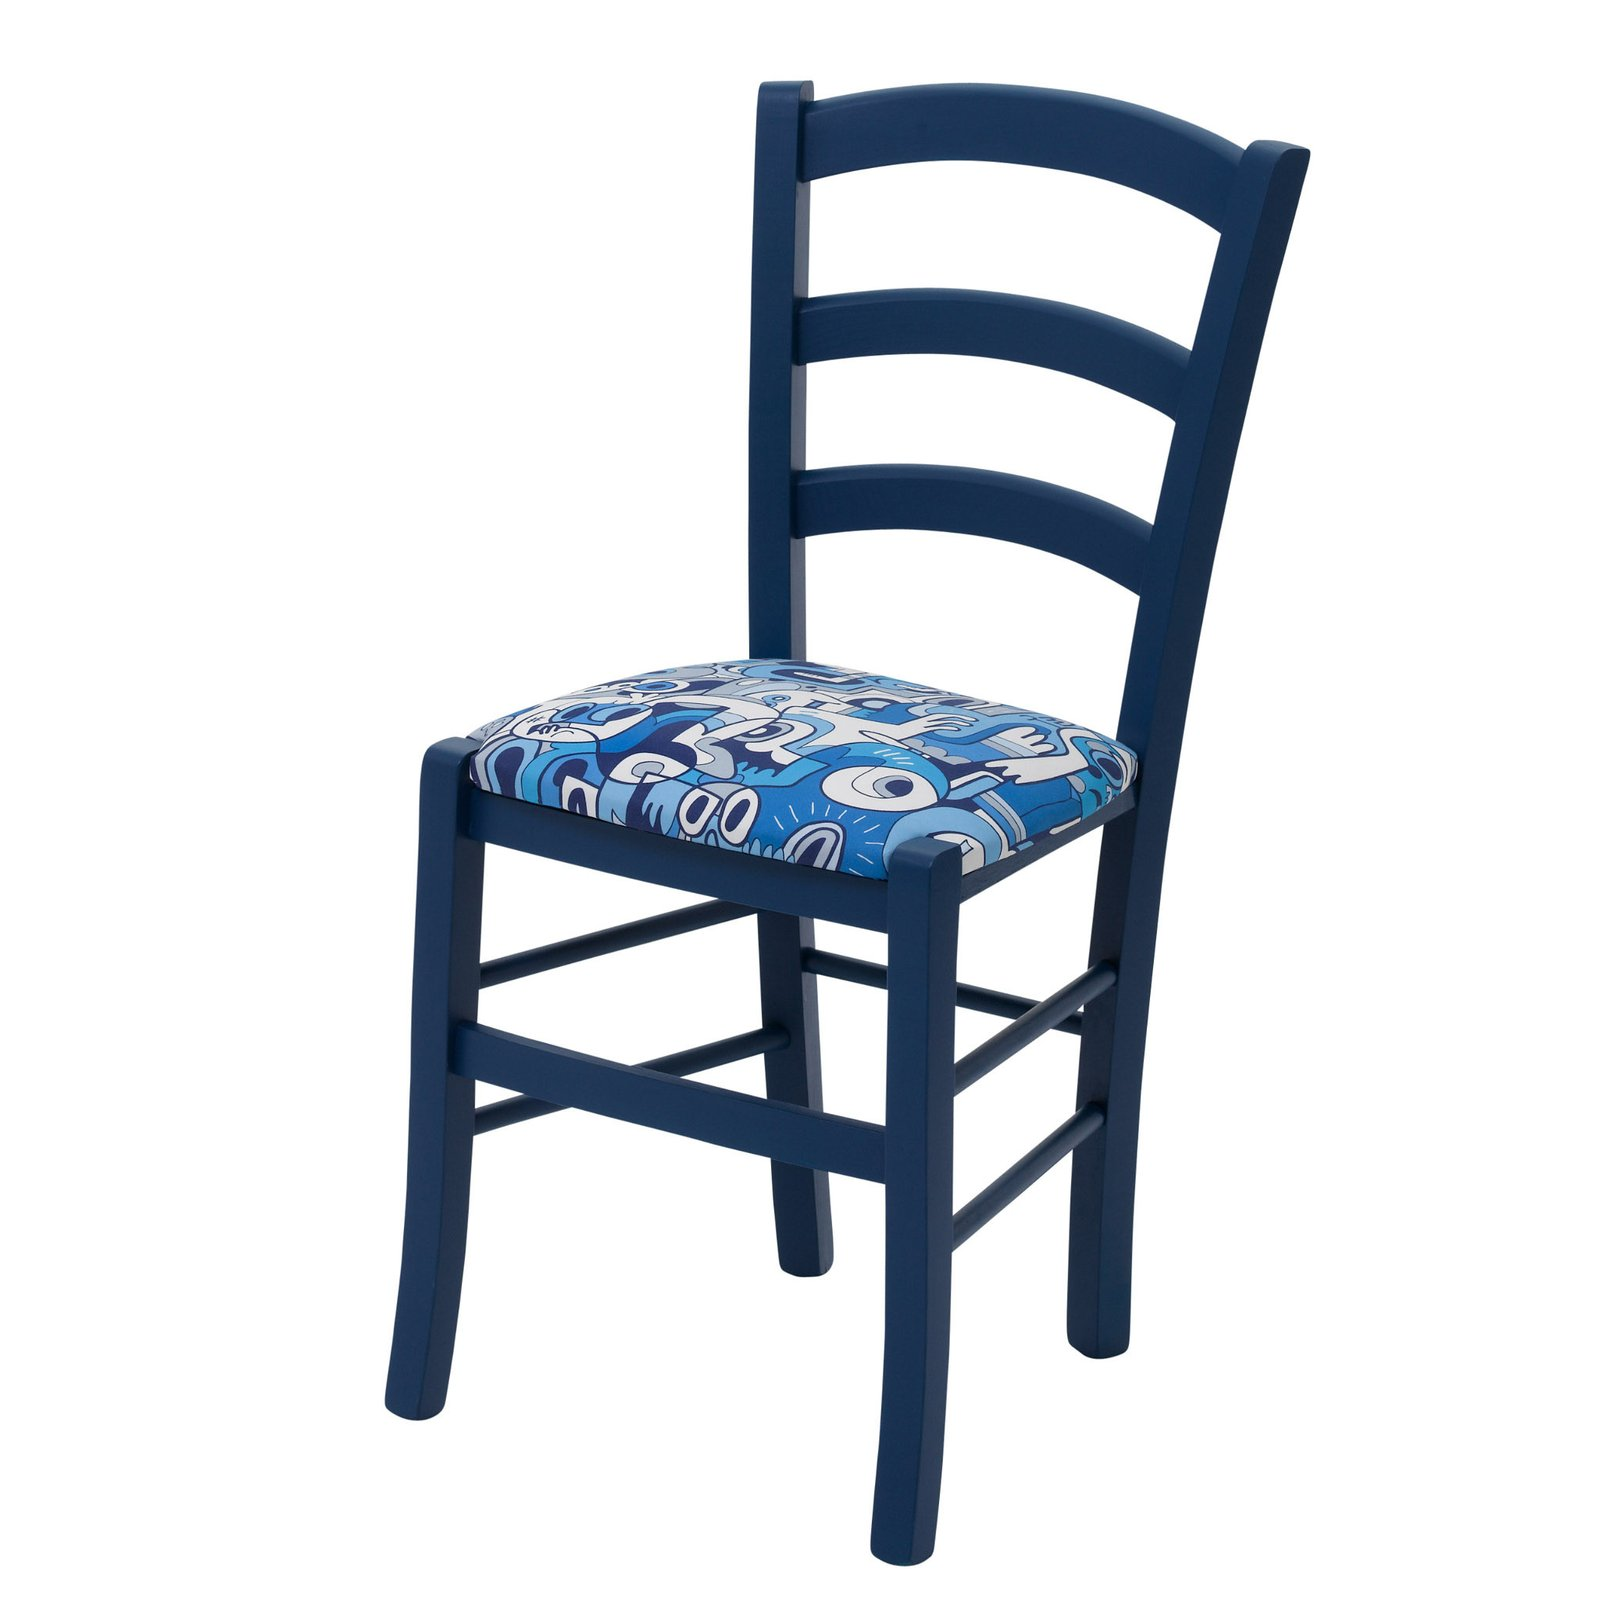 Kitchen Chairs Wood Blue Kitchen Chairs Daisy By Cheeky Chairs Upholstered In Deep Blue Splash By Jon Burgerman